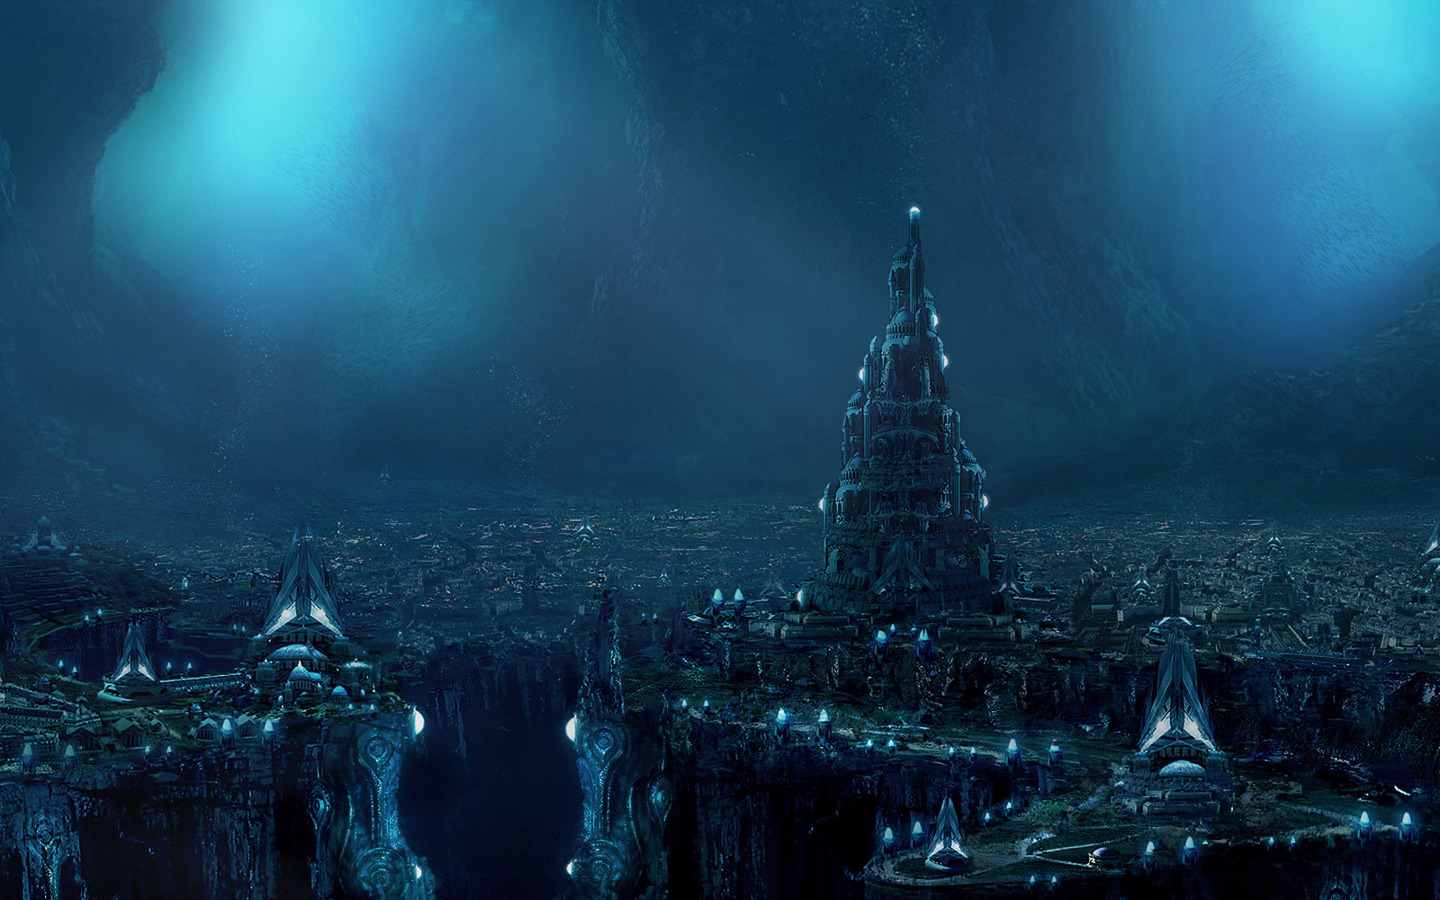 Free Download New World Fantasy Wallpapers 1440x900 Pixhome